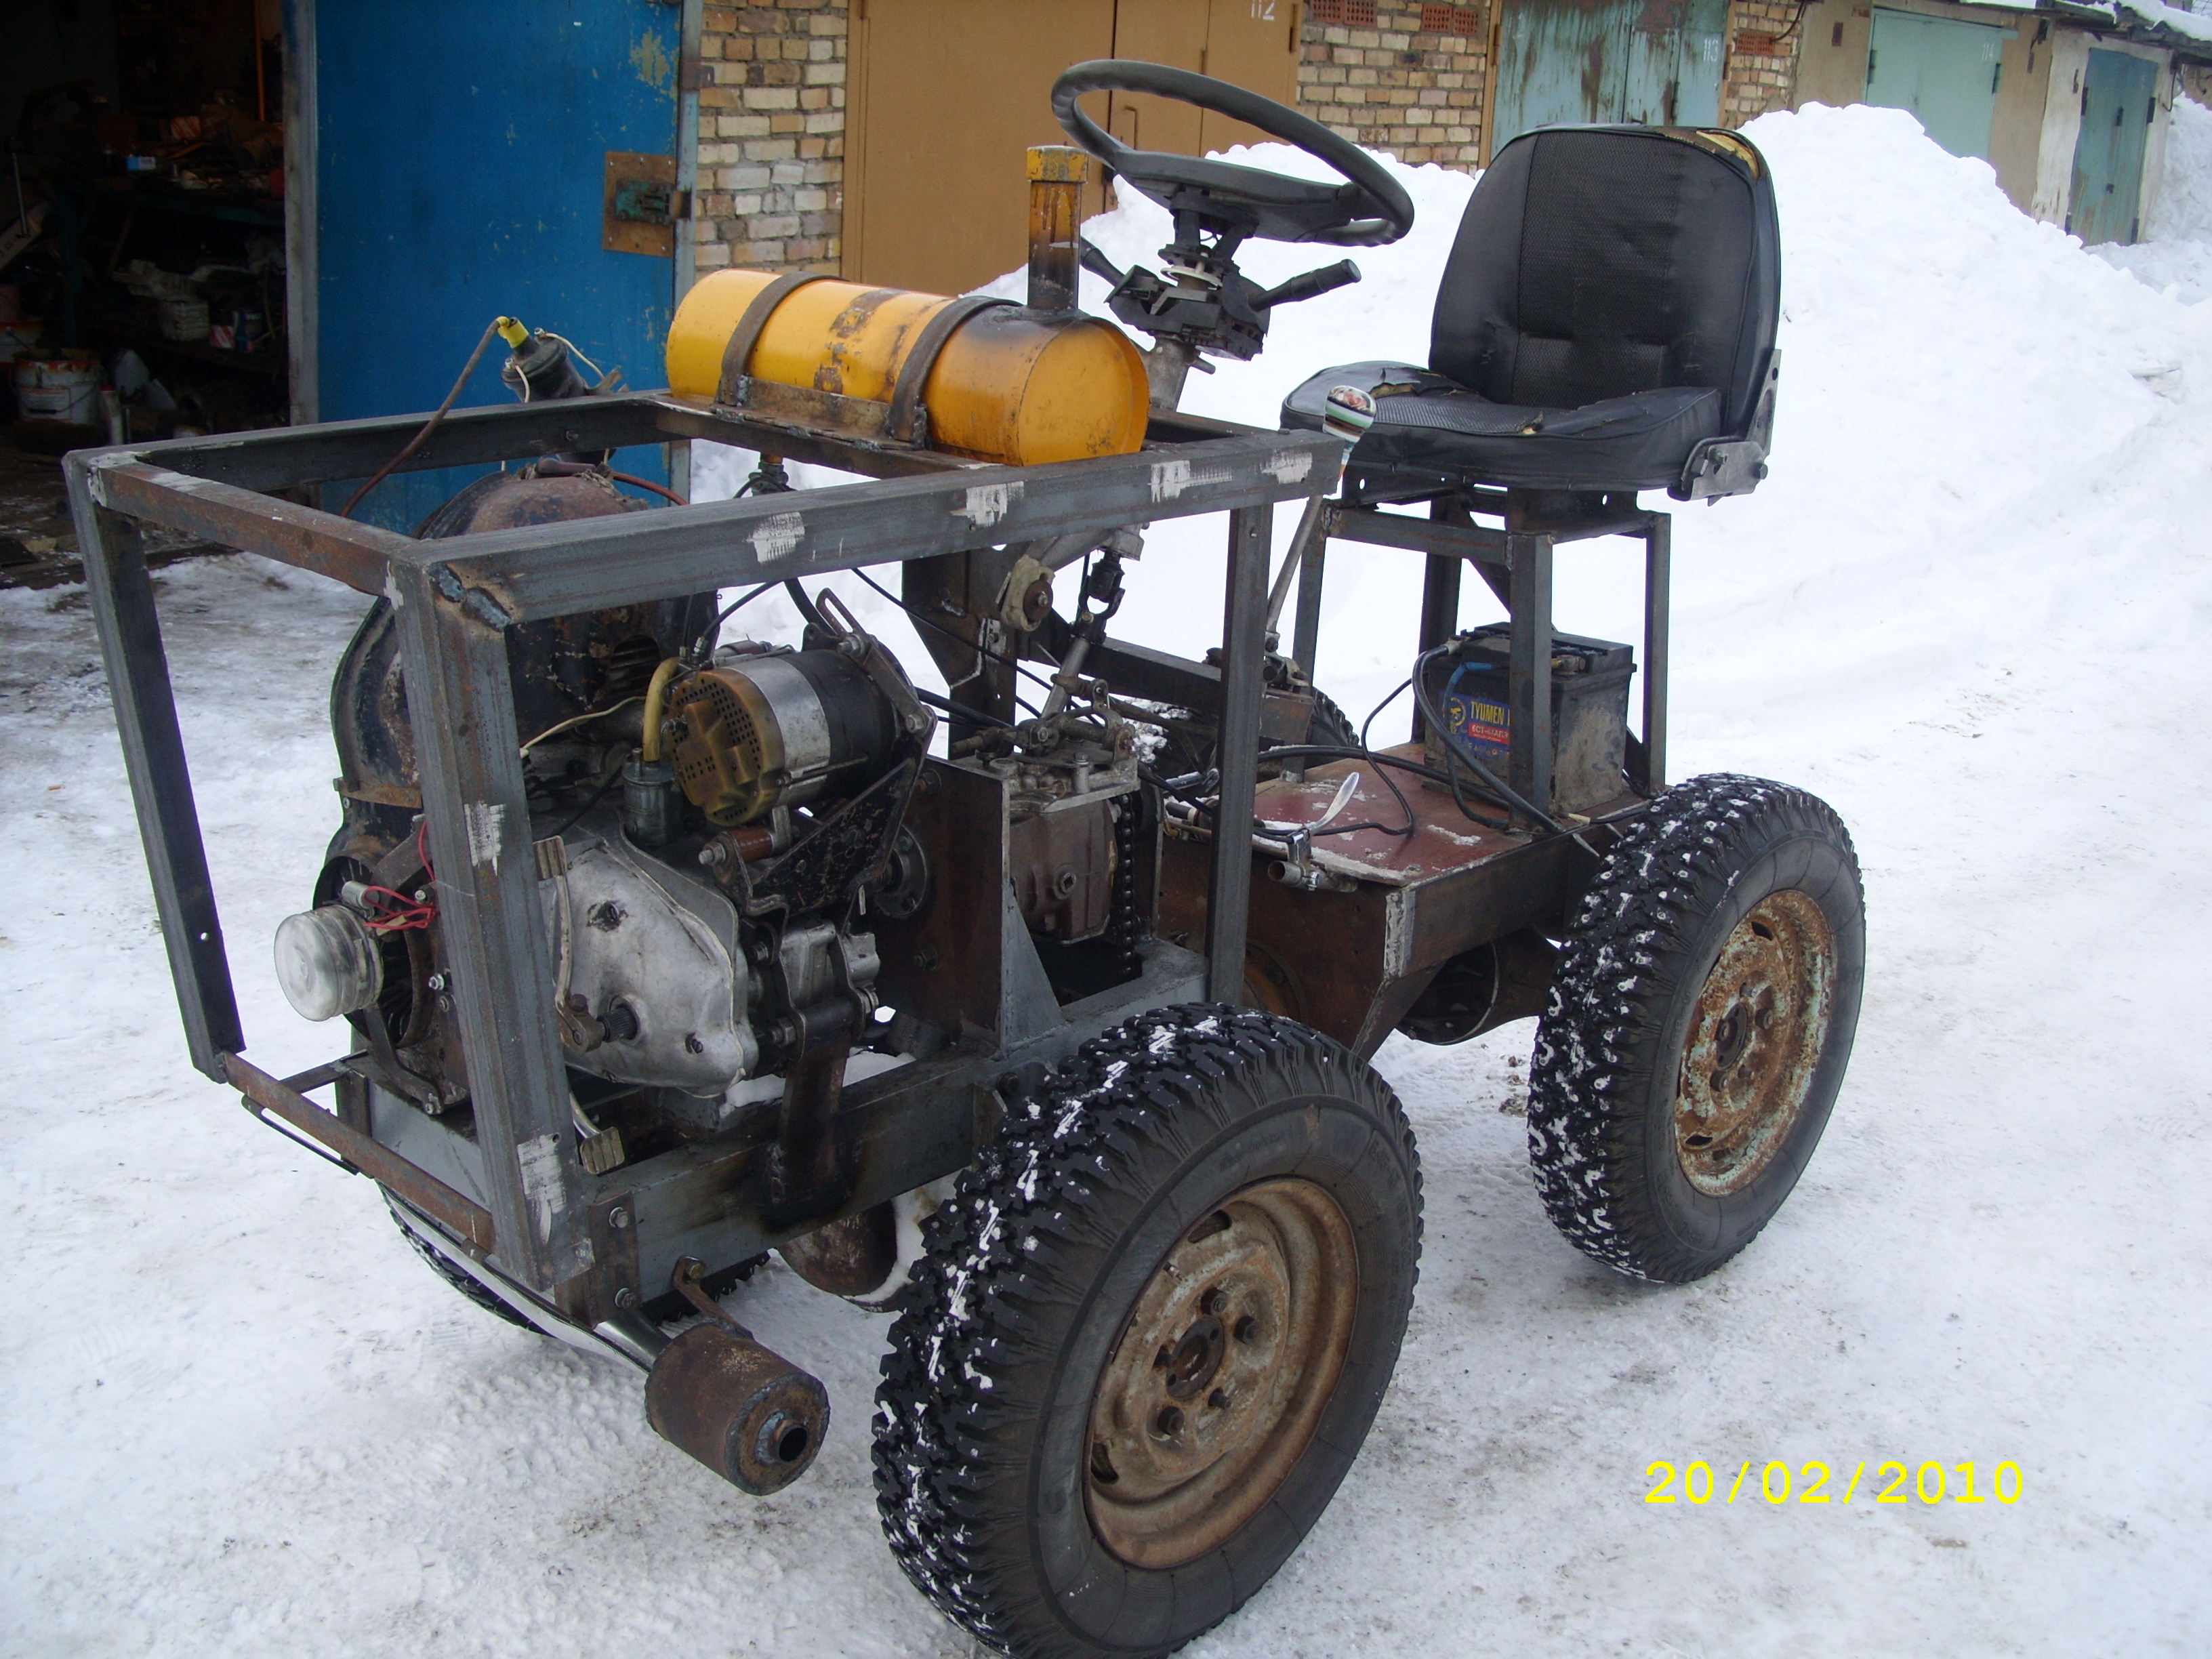 http://www.snowmobile.ru/forum/download/file.php?id=143871&mode=view